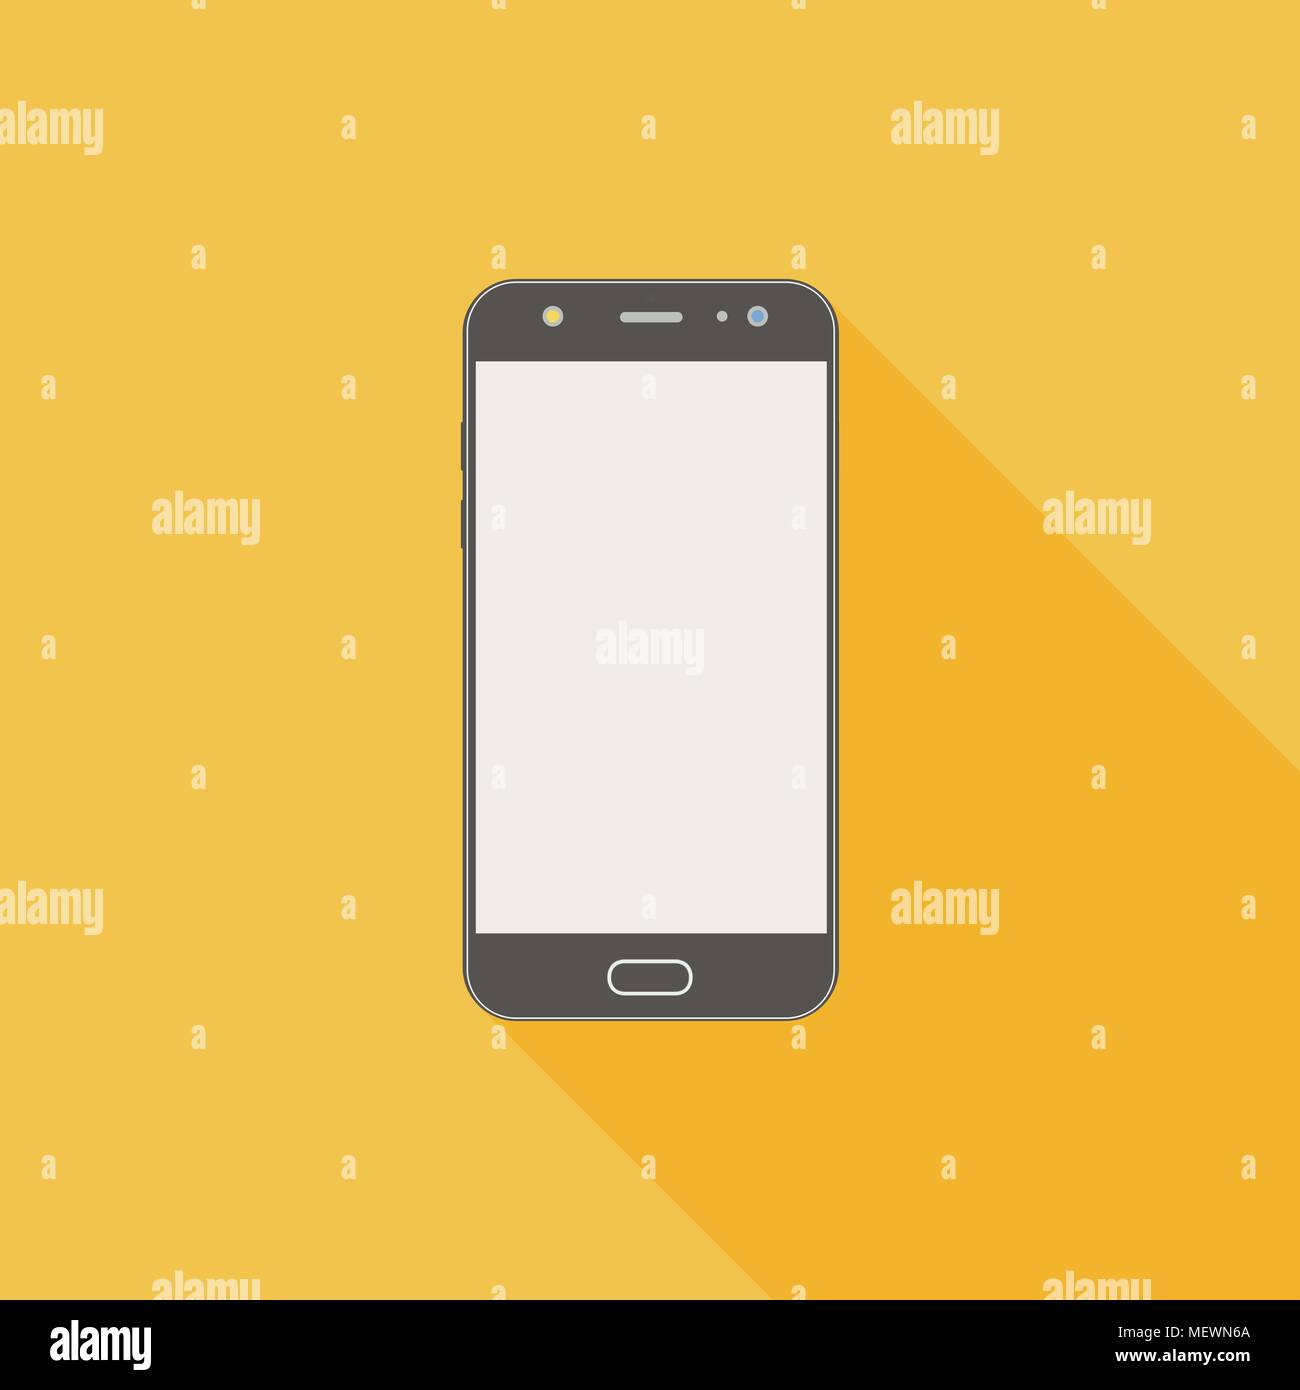 Smartphone Flat Icon With Blank Display Sign Of A Cellphone With